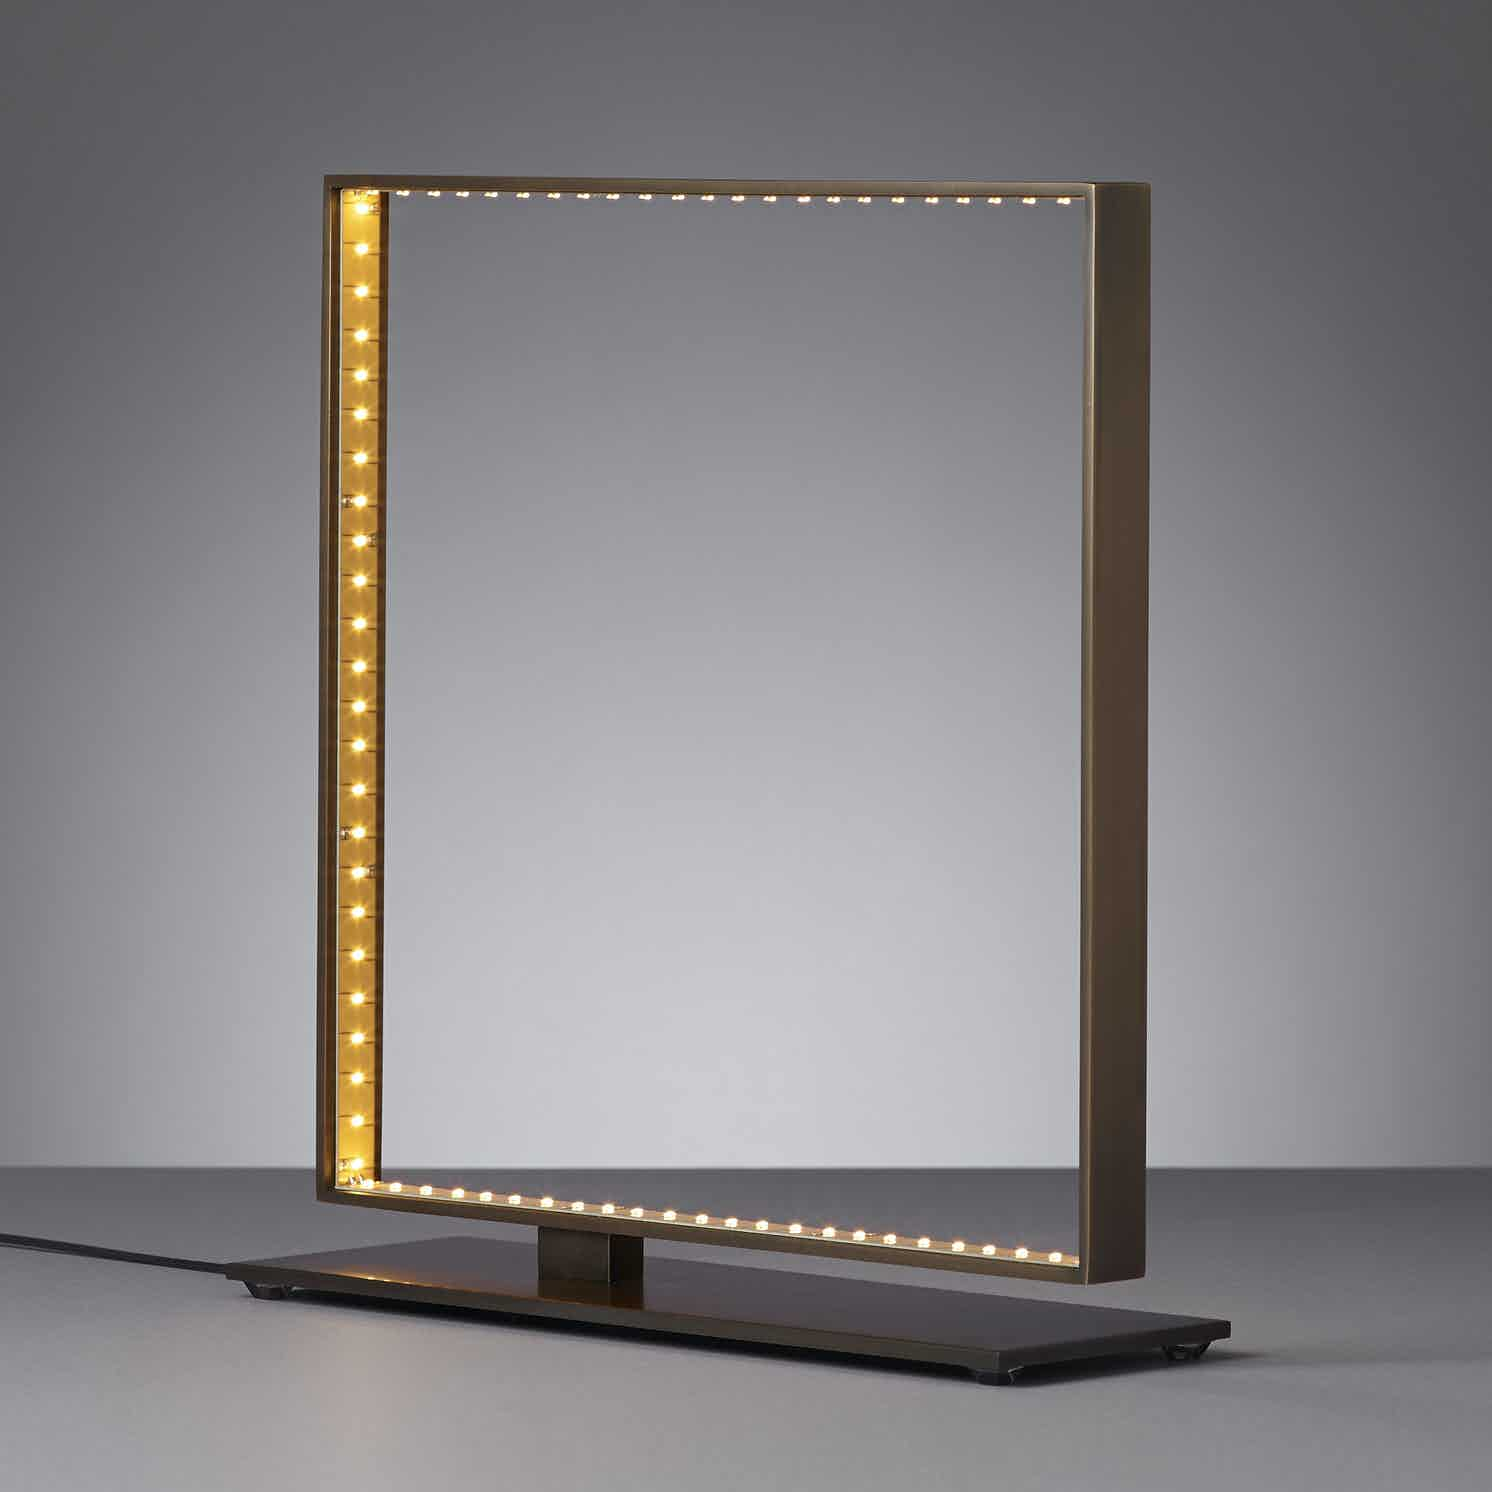 Le deun luminaires square table lamp bronze 34 haute living 200130 201257